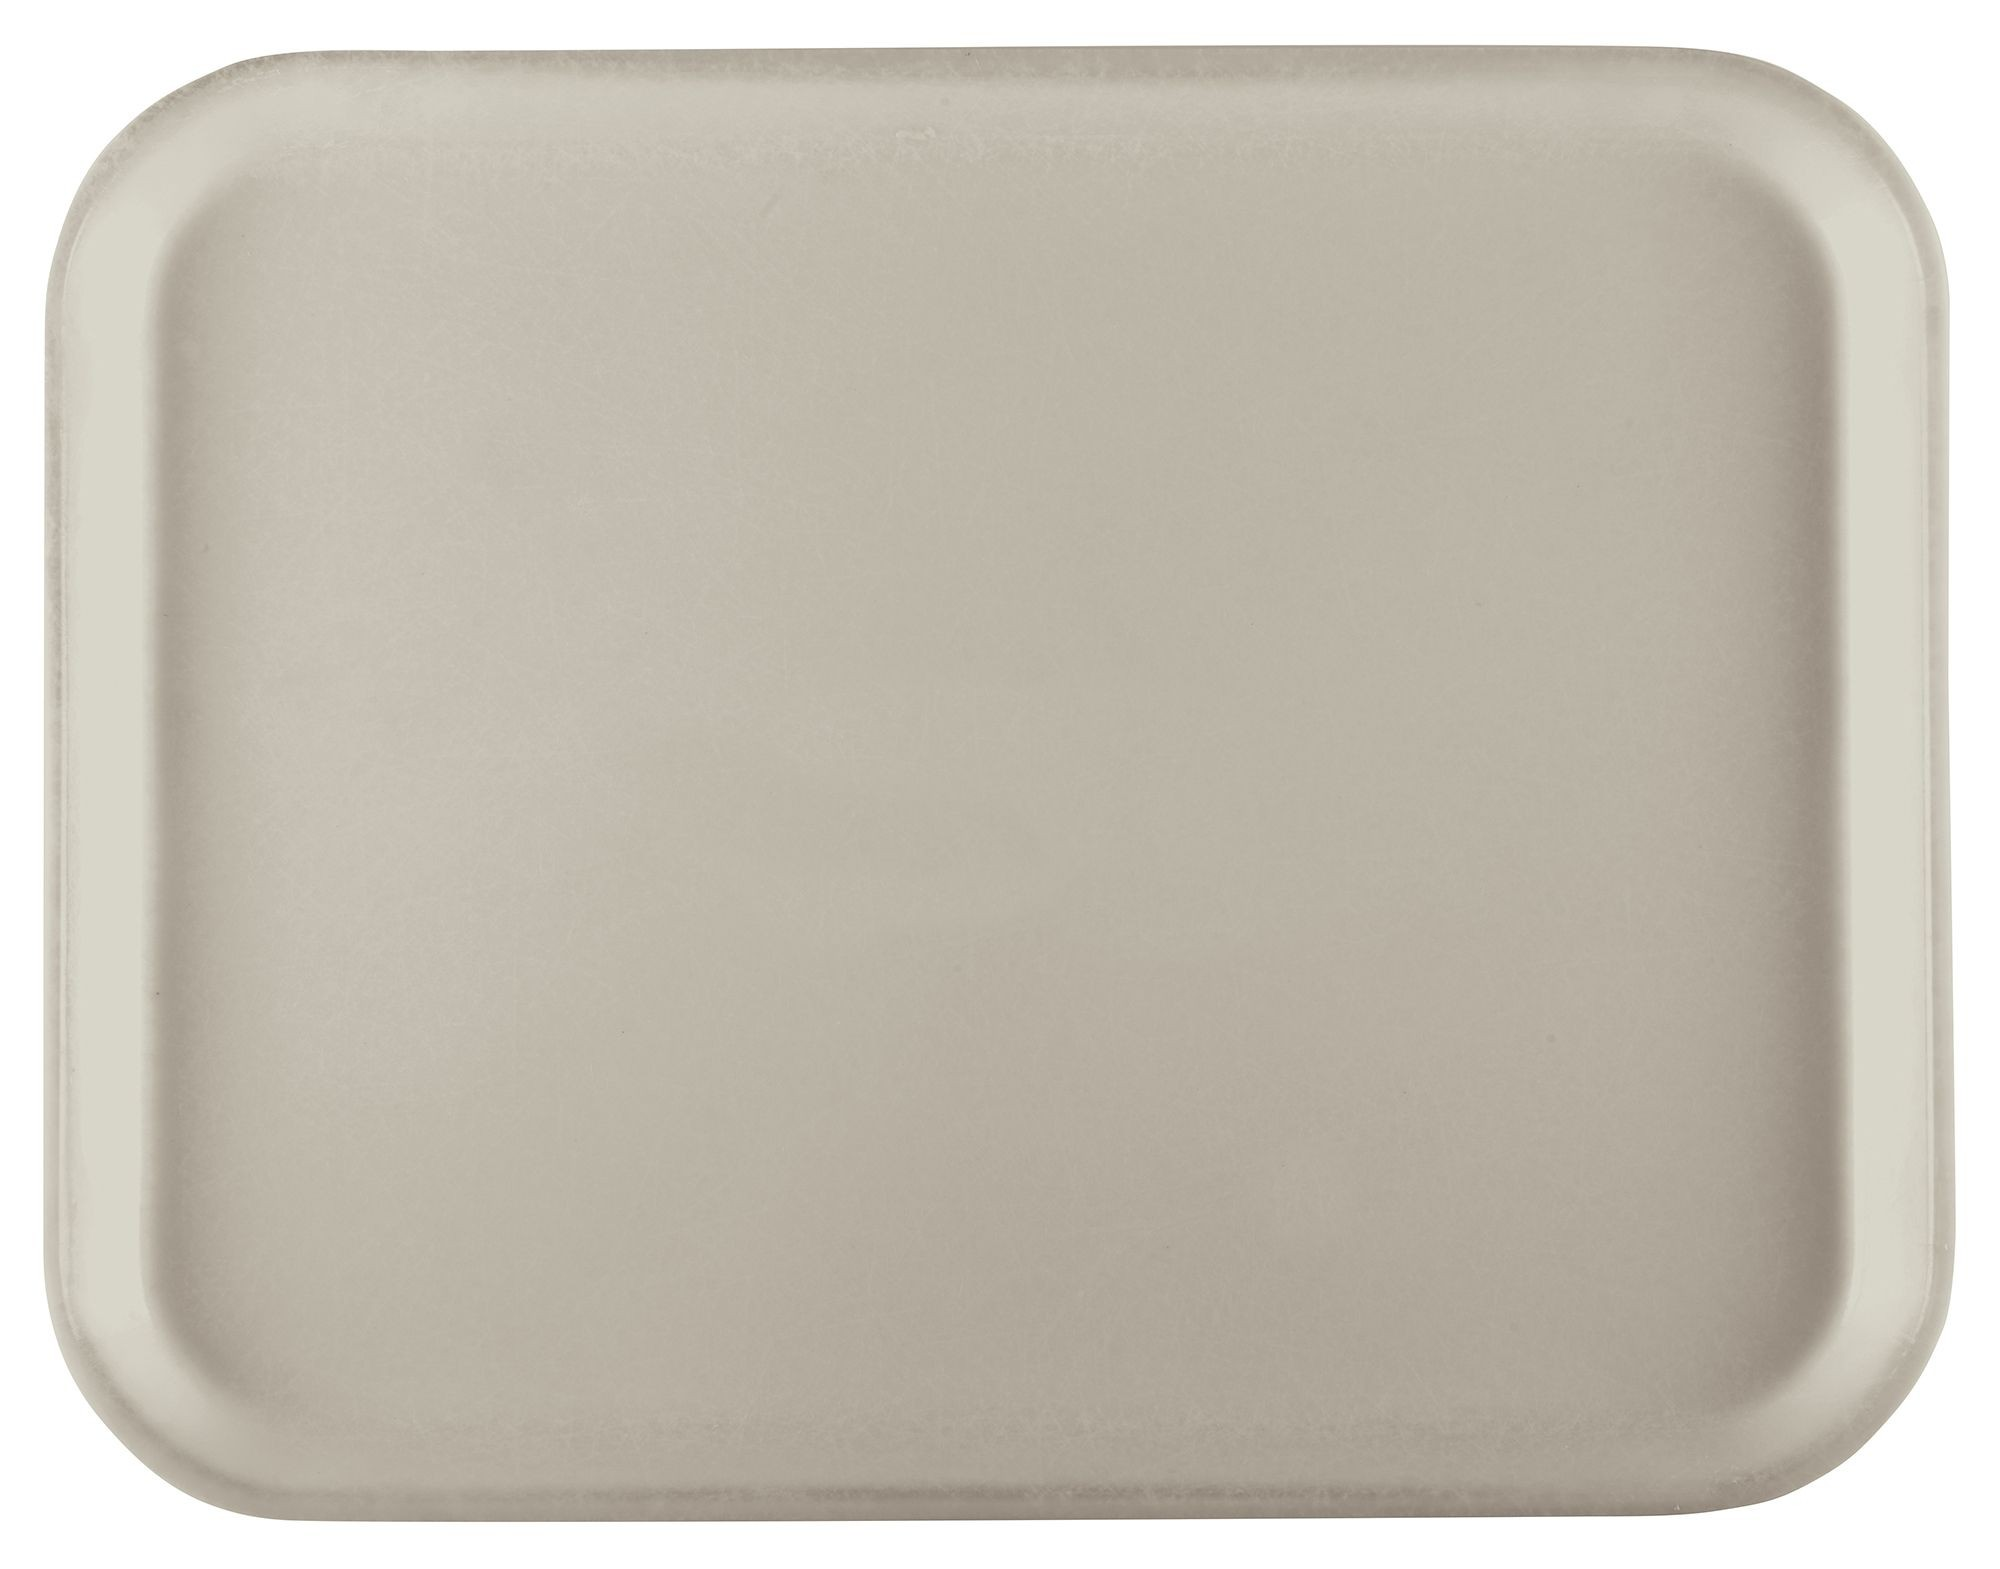 "Winco FGT-1216C Fiberglass Rectangular Tray, Cream, 12"" x 16"""